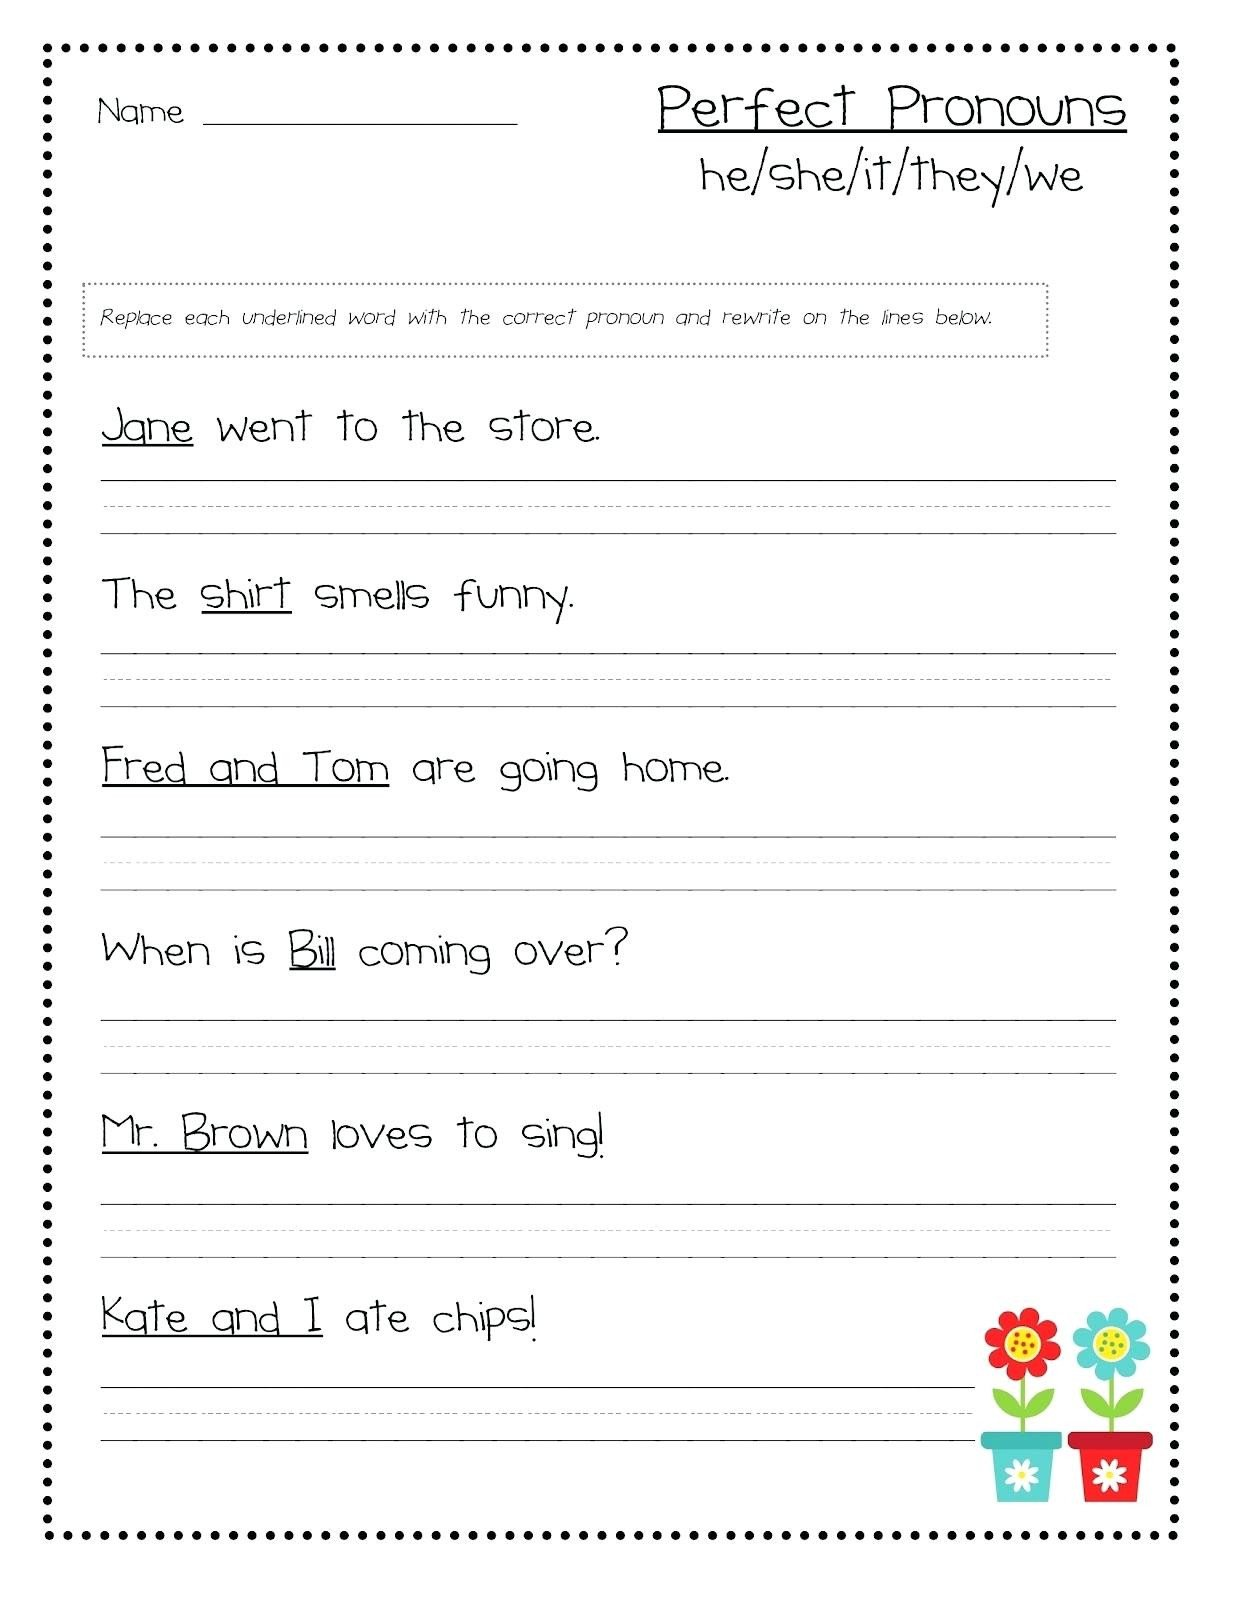 2nd grade pronoun worksheet 19